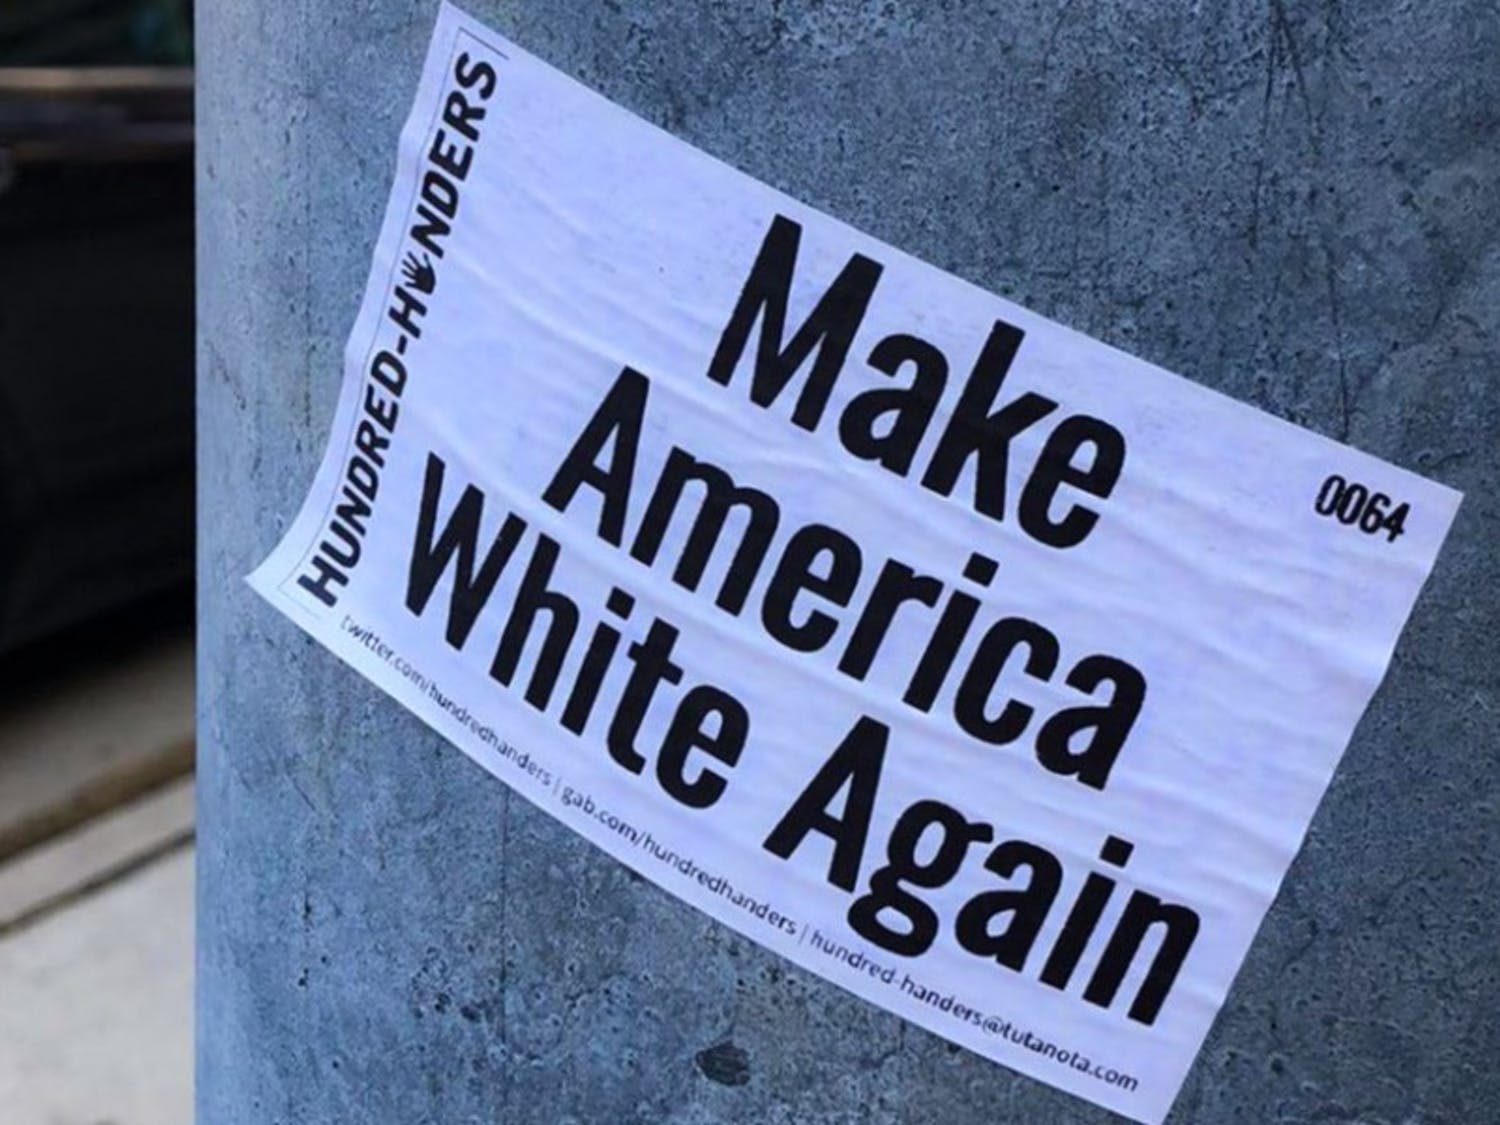 A racist sticker was found on a light post near Witte Residence Hall Tuesday.